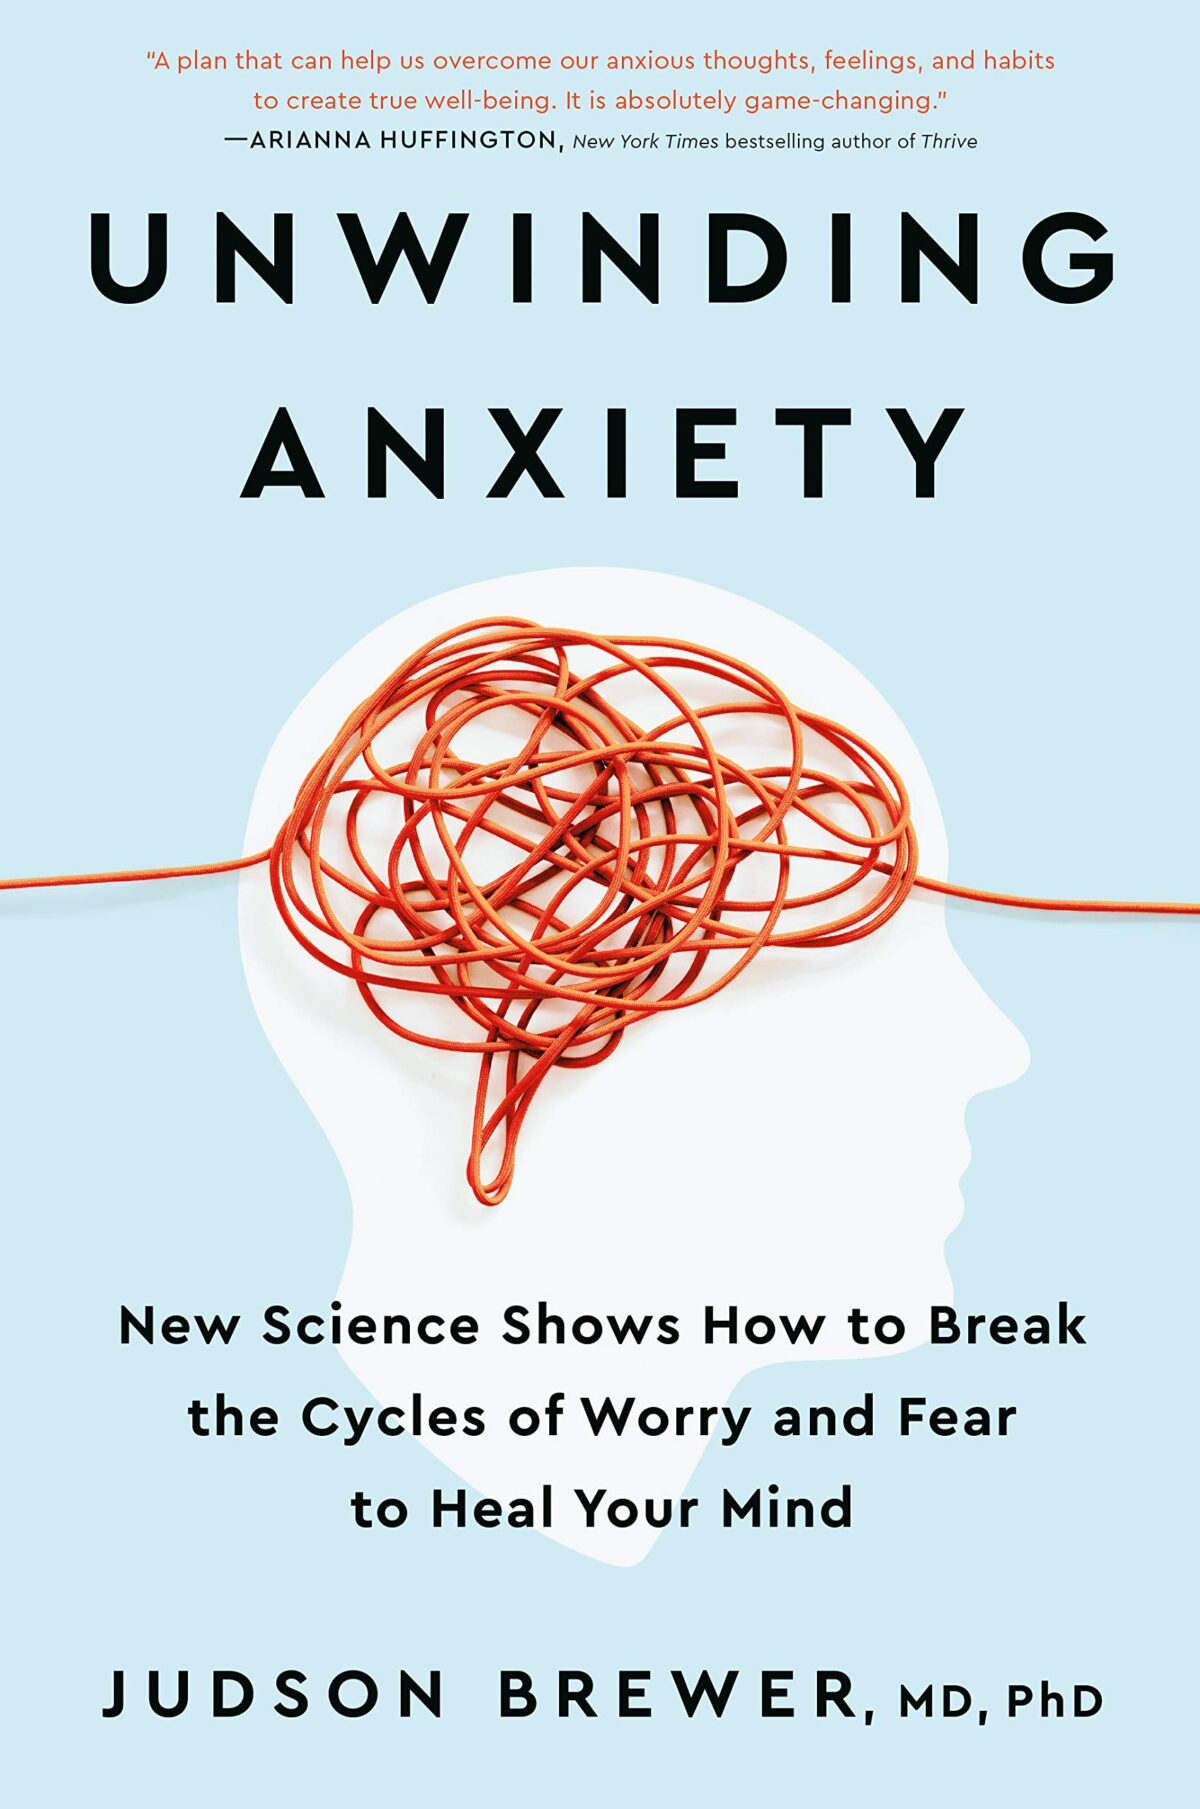 Unwinding Anxiety: New Science Shows How to Break the Cycles of Worry and Fear to Heal Your Mind(Avery, 2021, 304 pages)